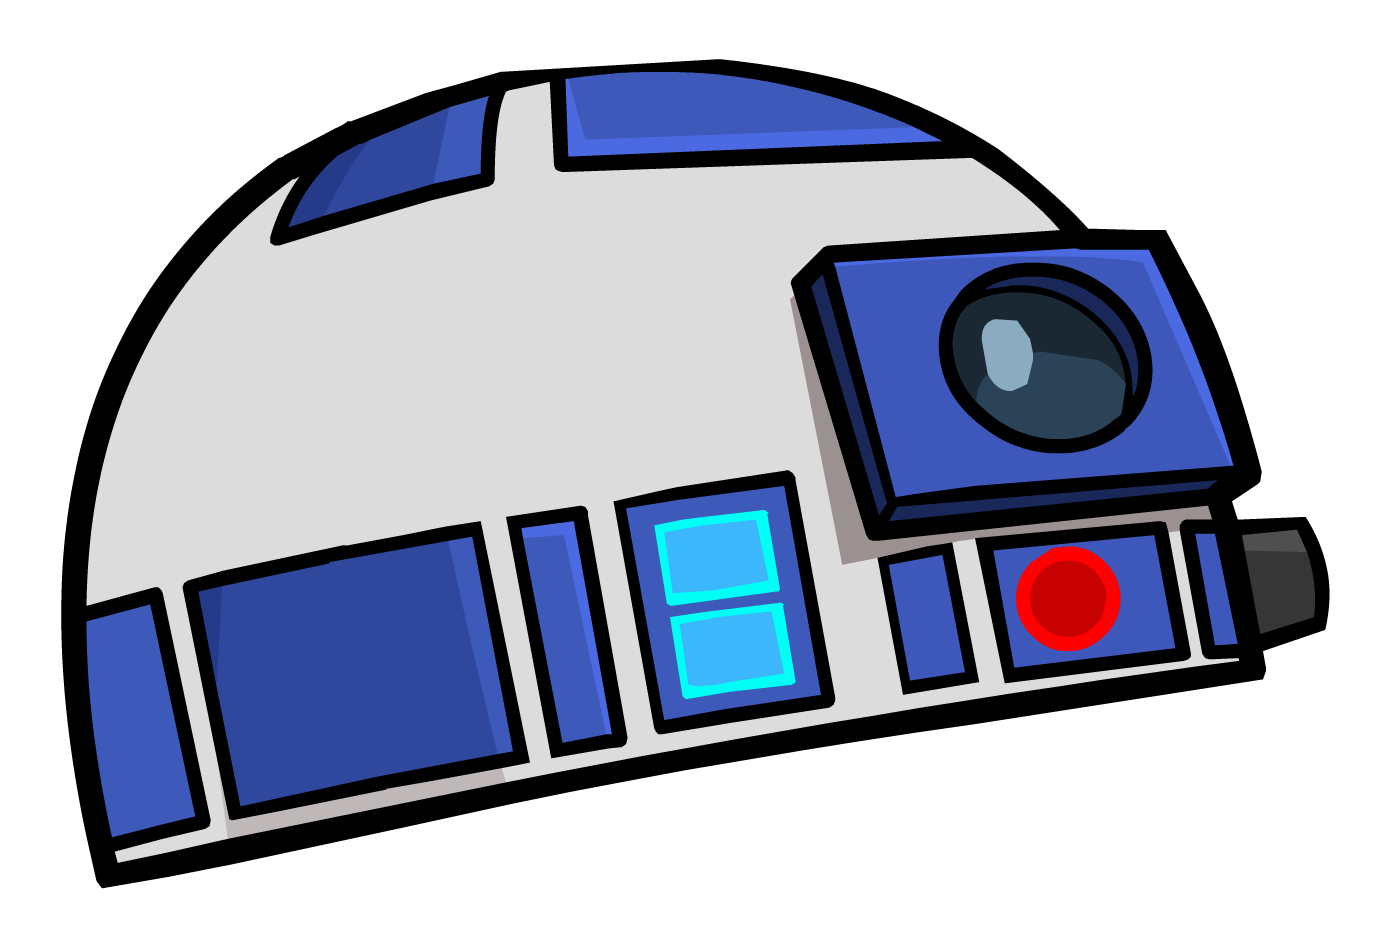 Star wars clipart r2d2 png free R2-D2 Pin | Club Penguin Wiki | FANDOM powered by Wikia png free